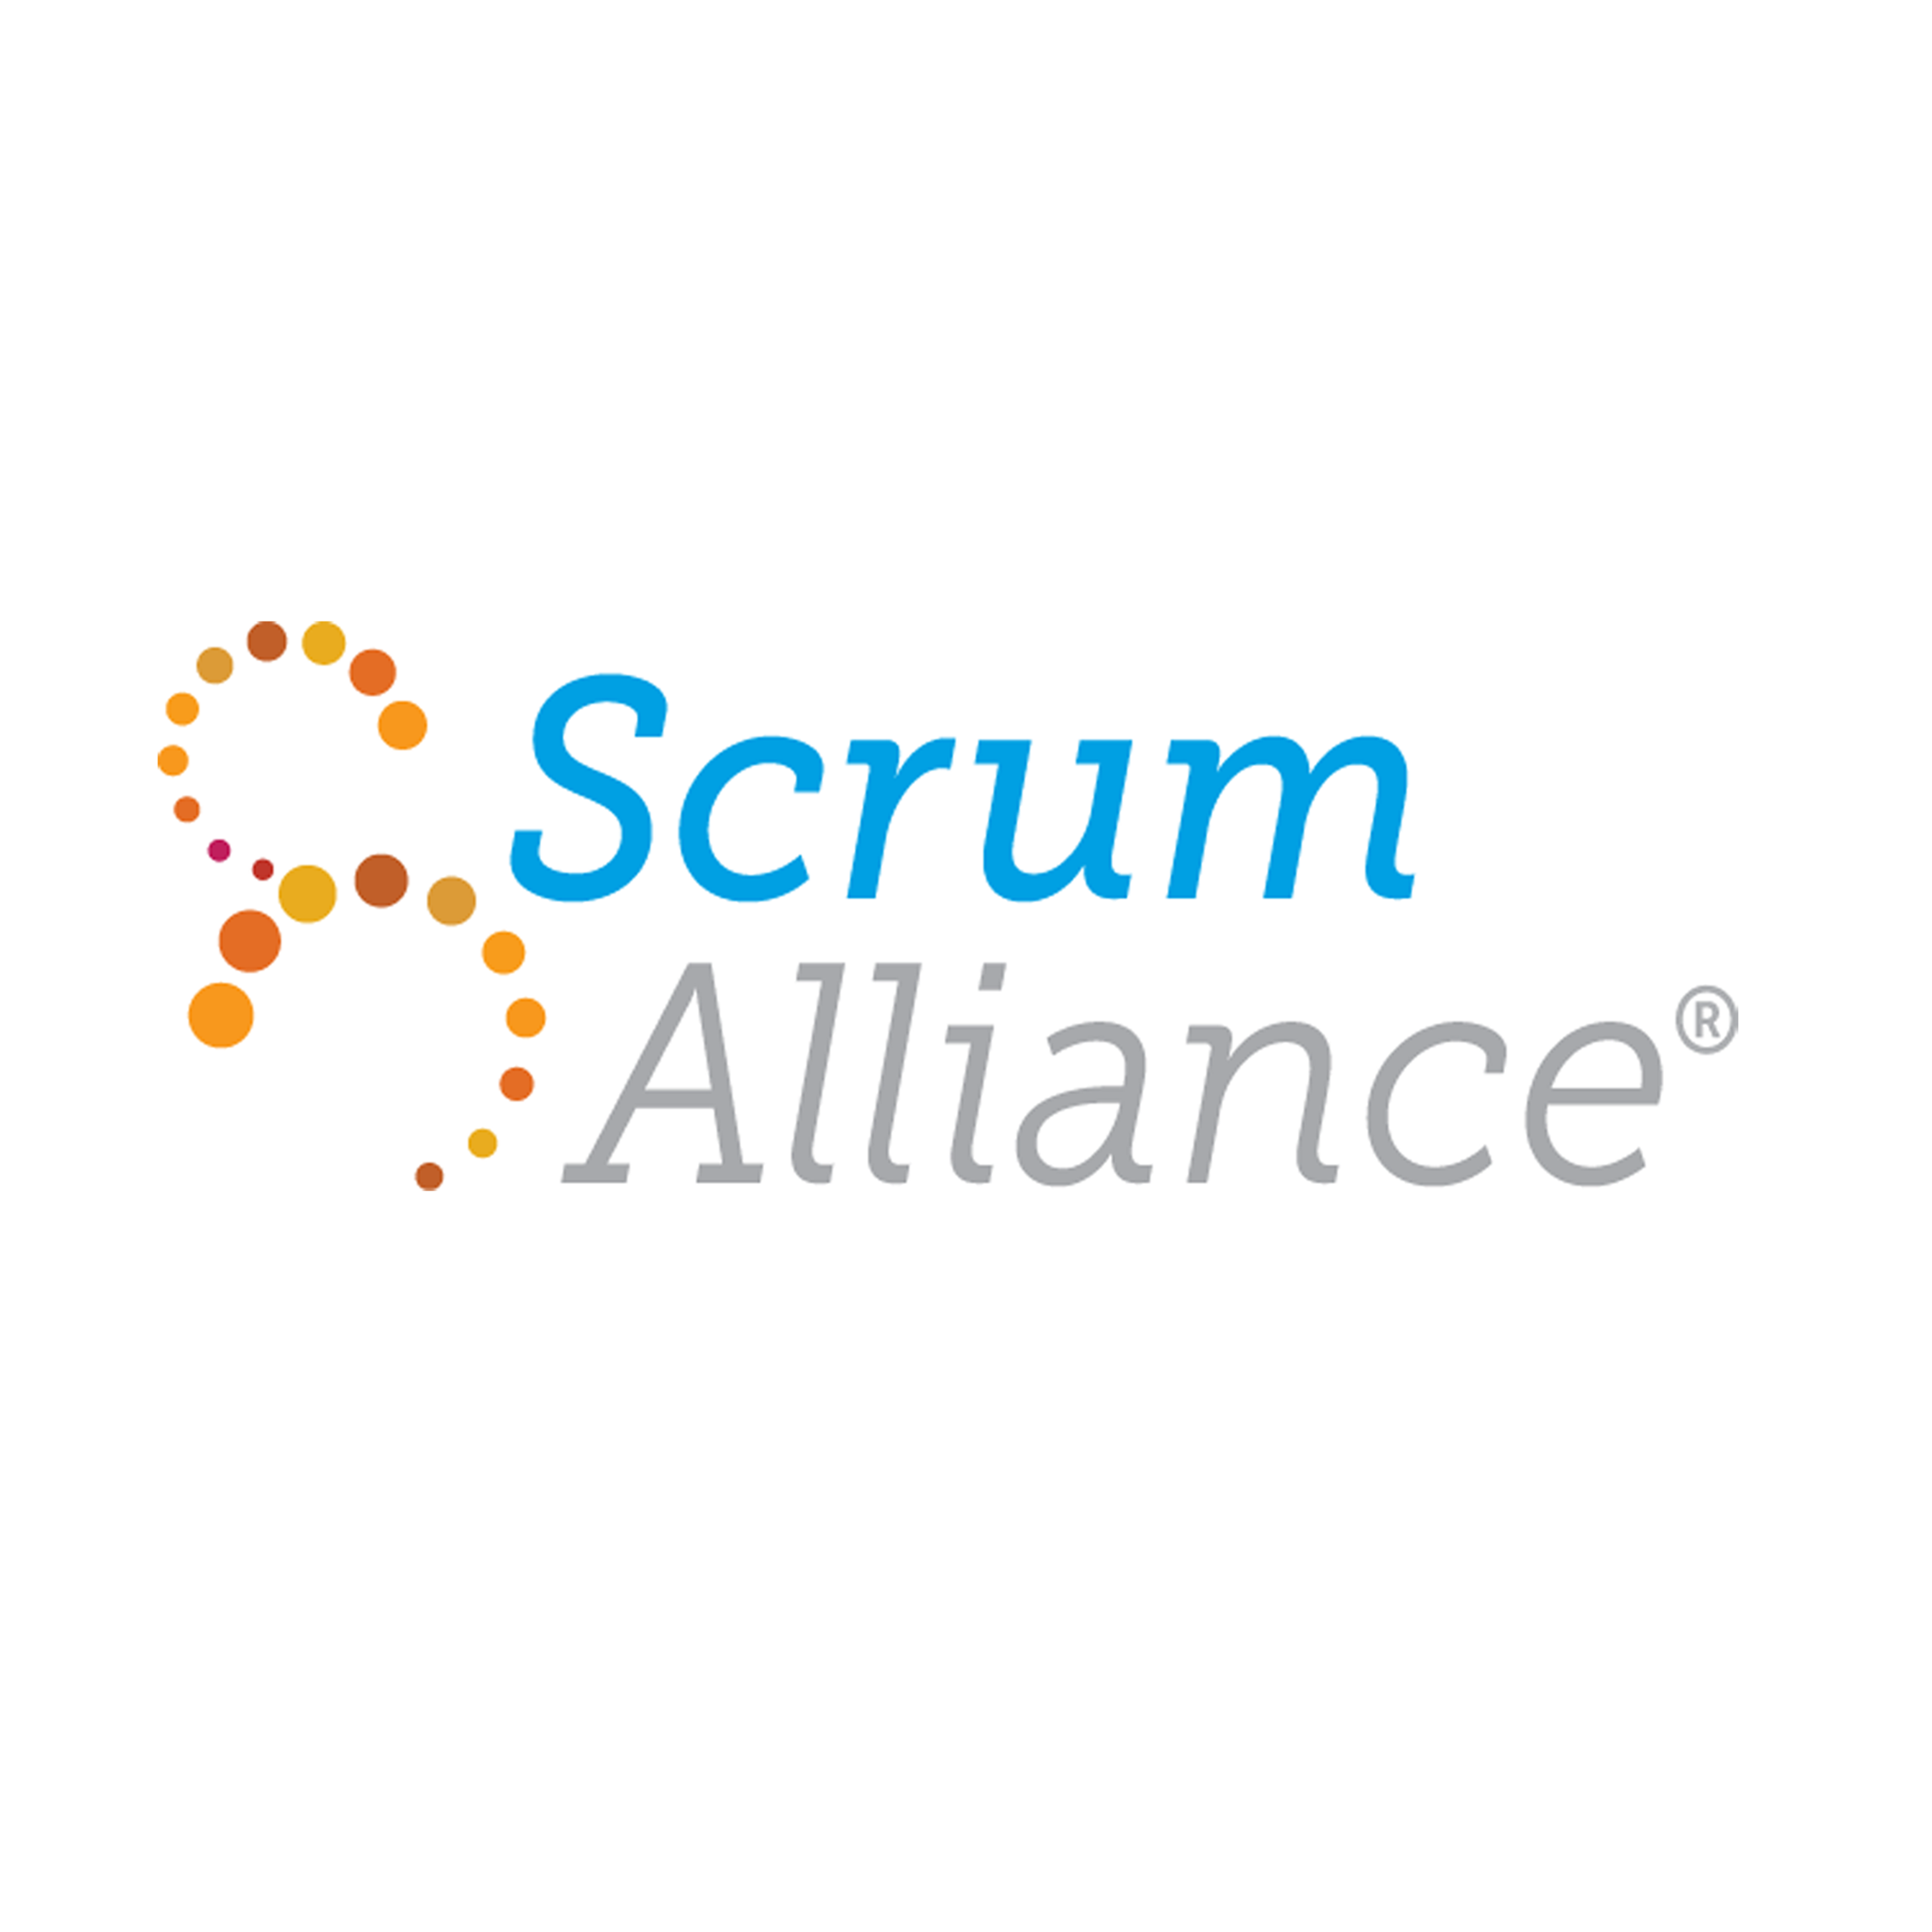 Scrum Alliance.png